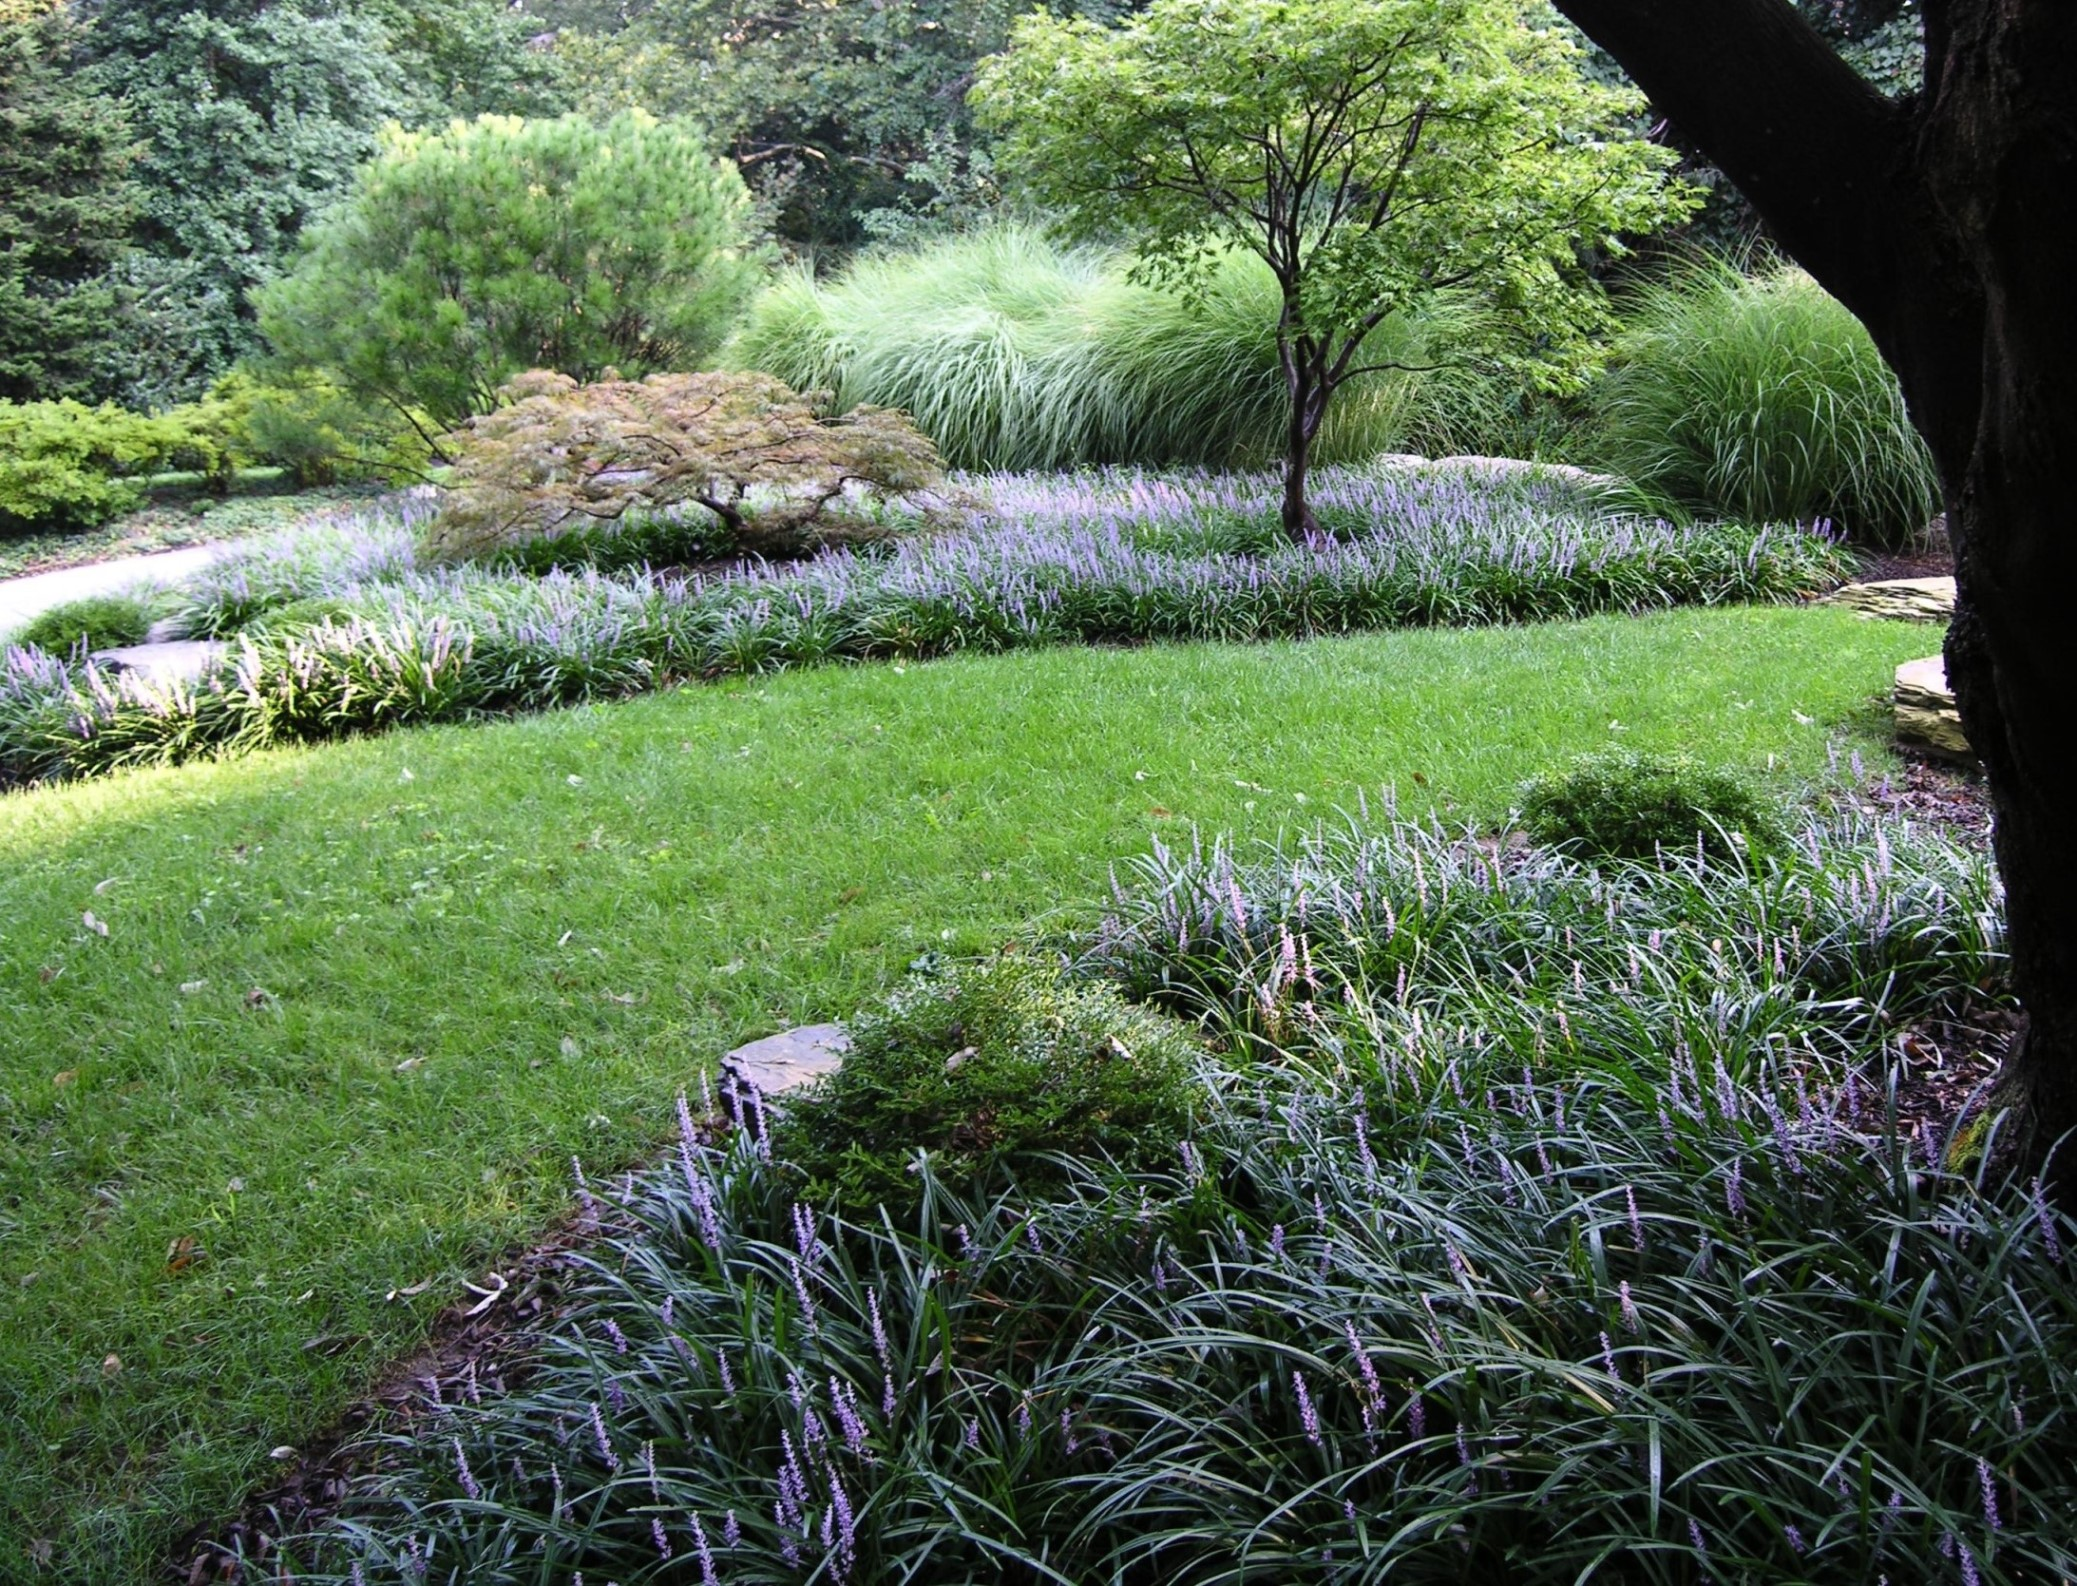 Weed-suppressing groundcovers can be an effective and attractive alternative to mulch, Villanova, PA